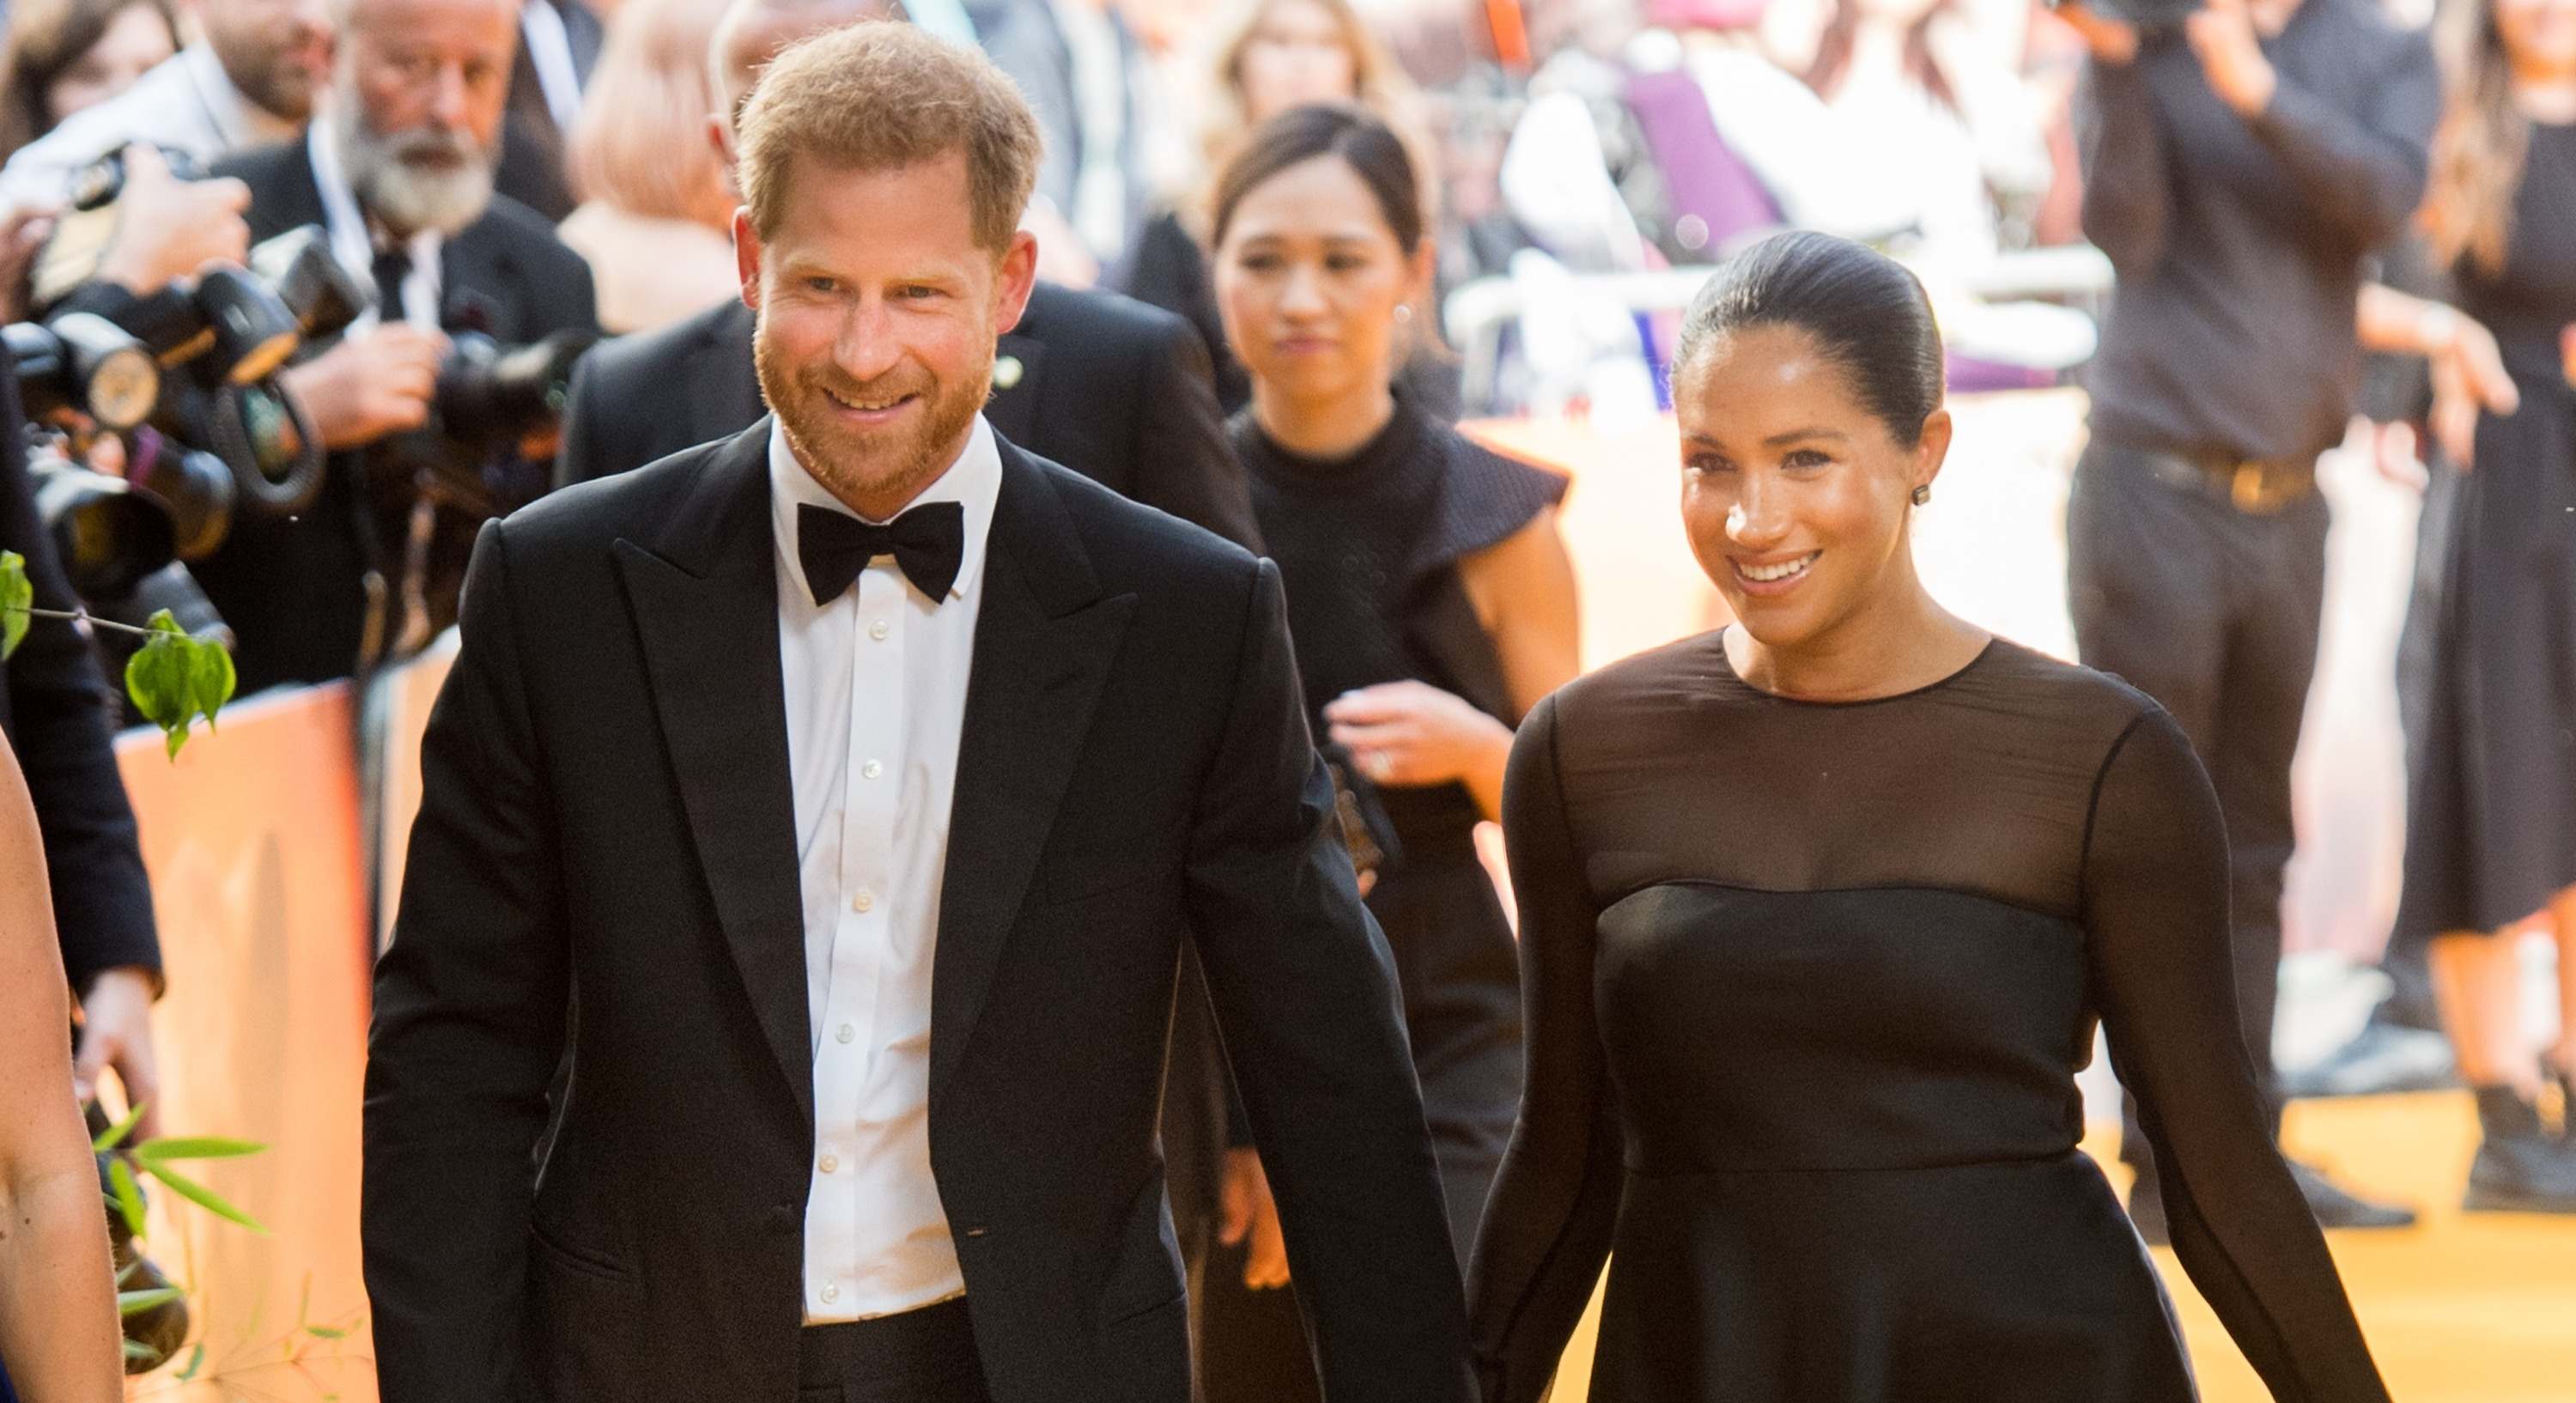 Prince Harry and Meghan Markle are reported to have appointed a new private secretary [Image: Getty]